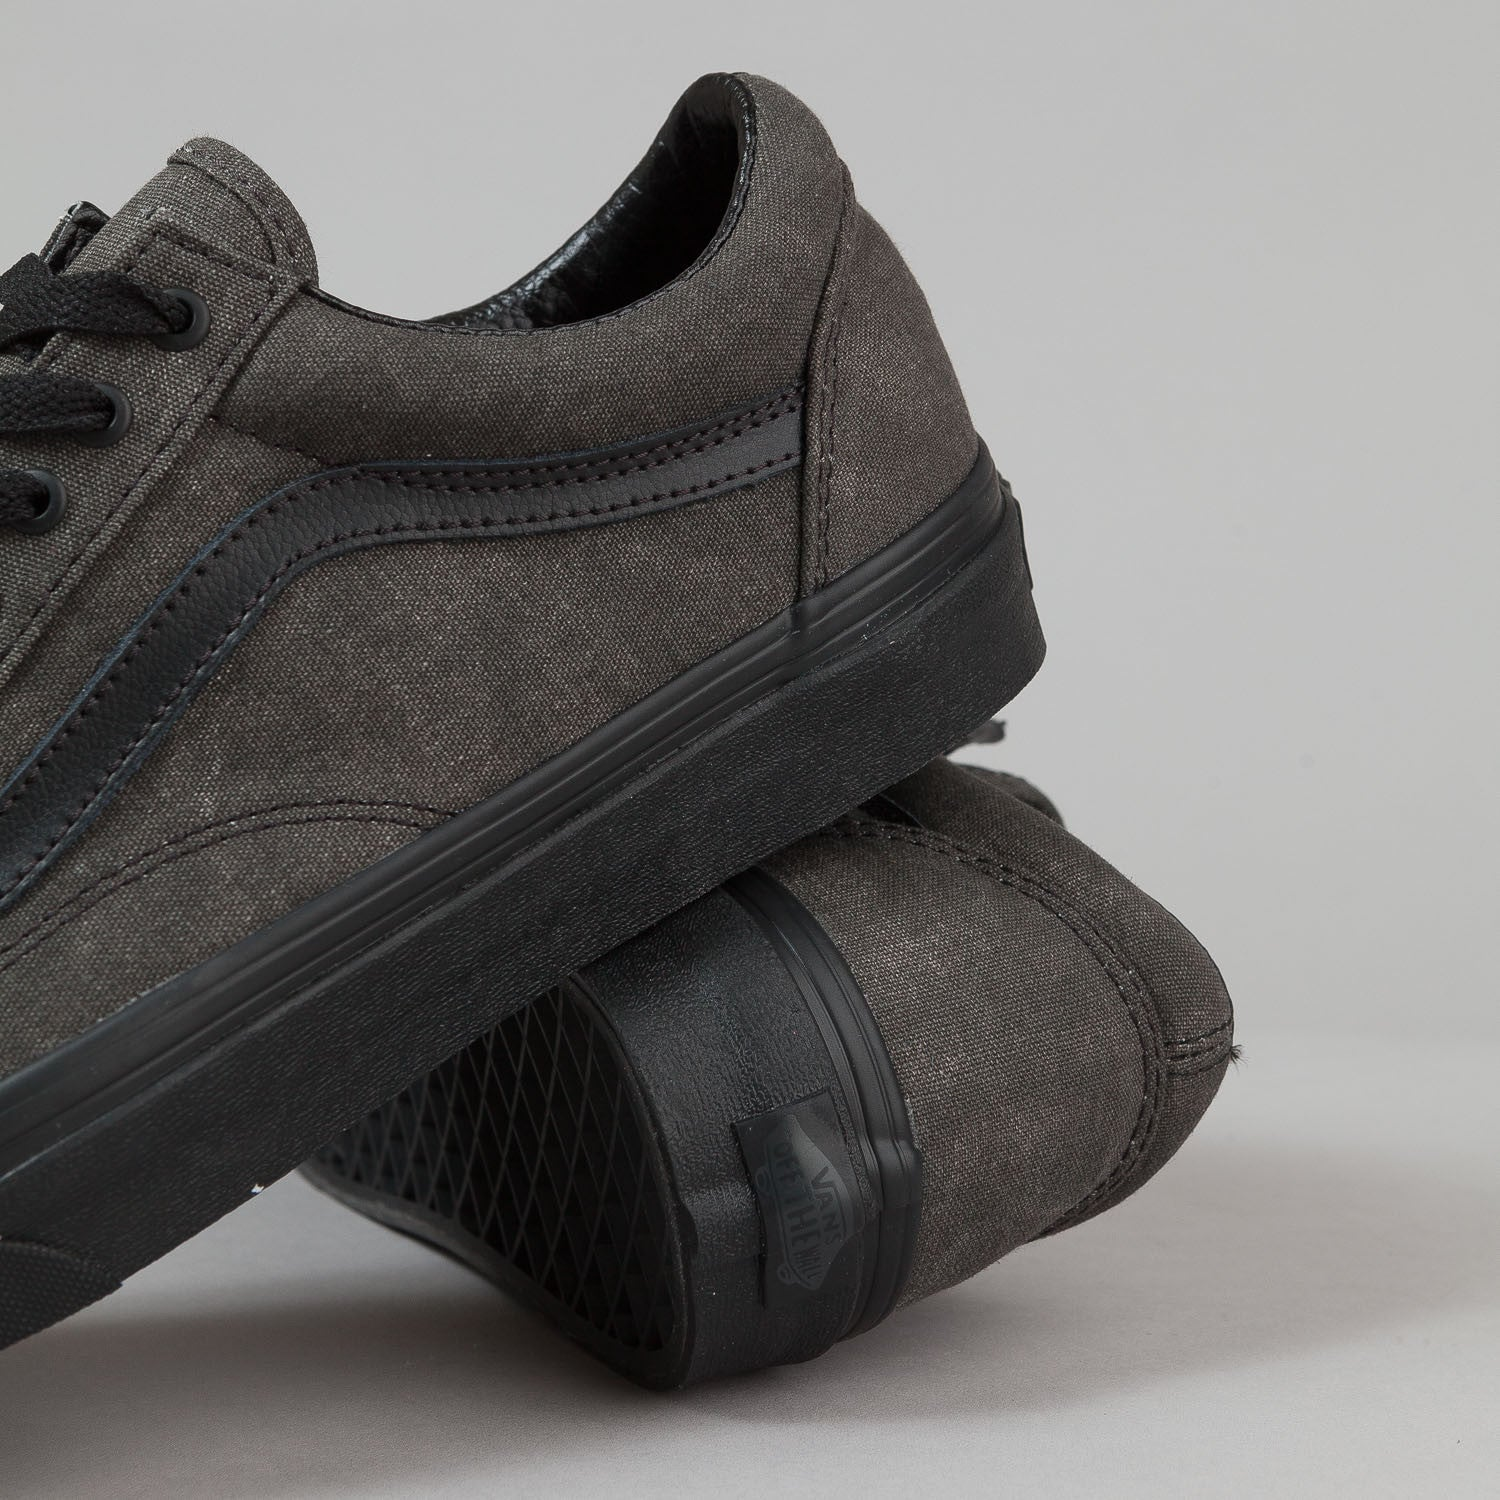 Vans Old Skool Shoes - Washed Black / Black